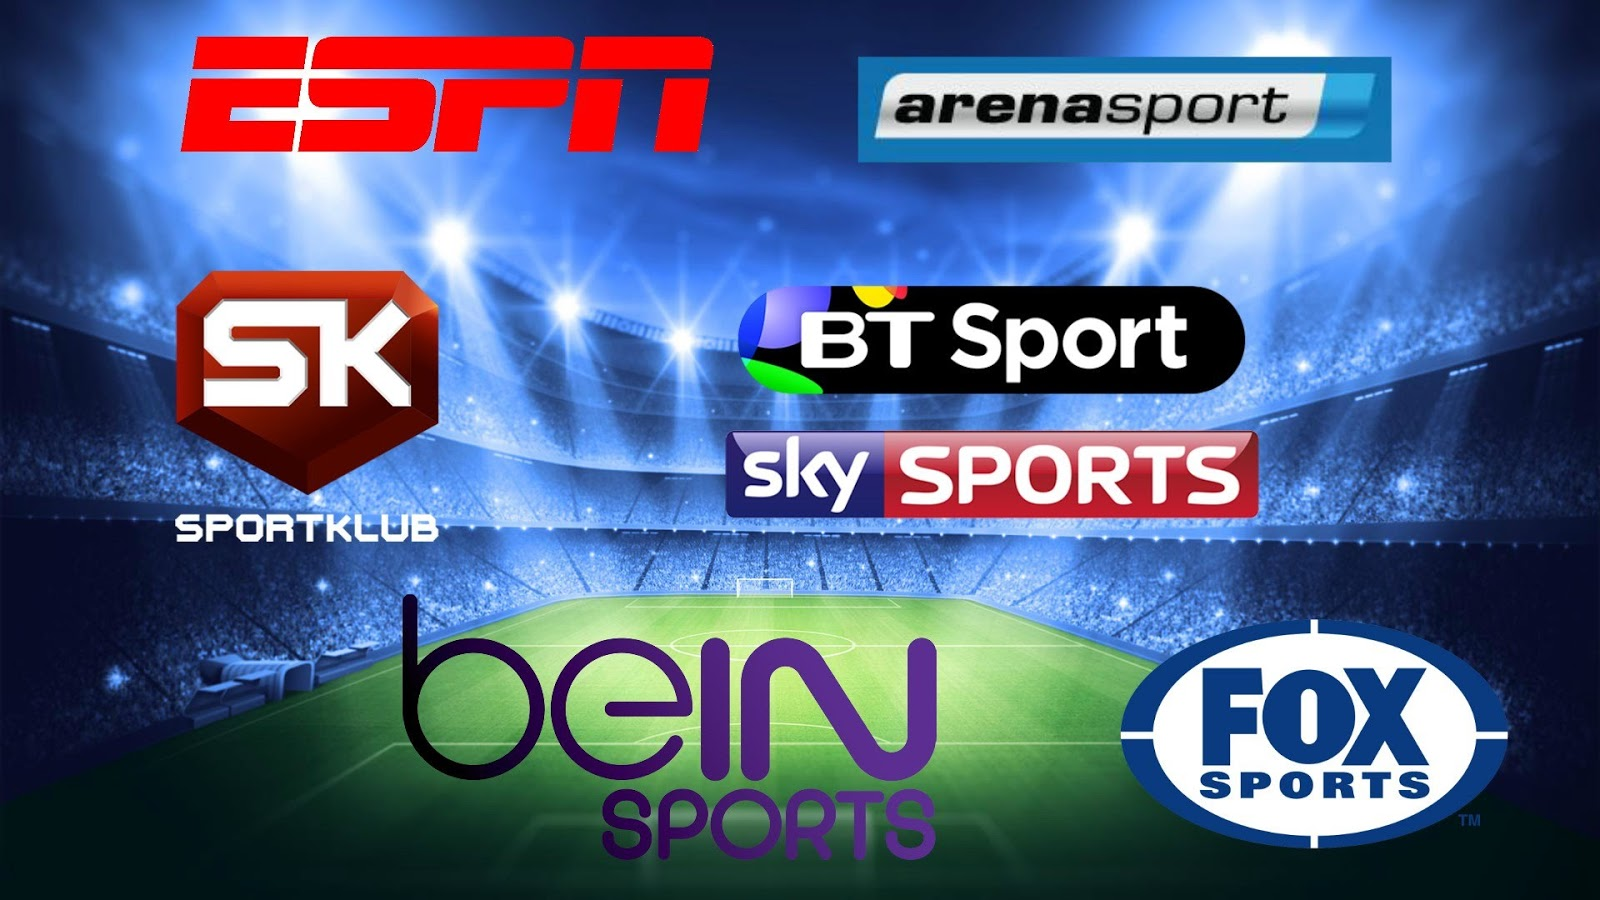 Online live streaming for sports channels 24 7 bein for Sky sports 2 hd live streaming online free